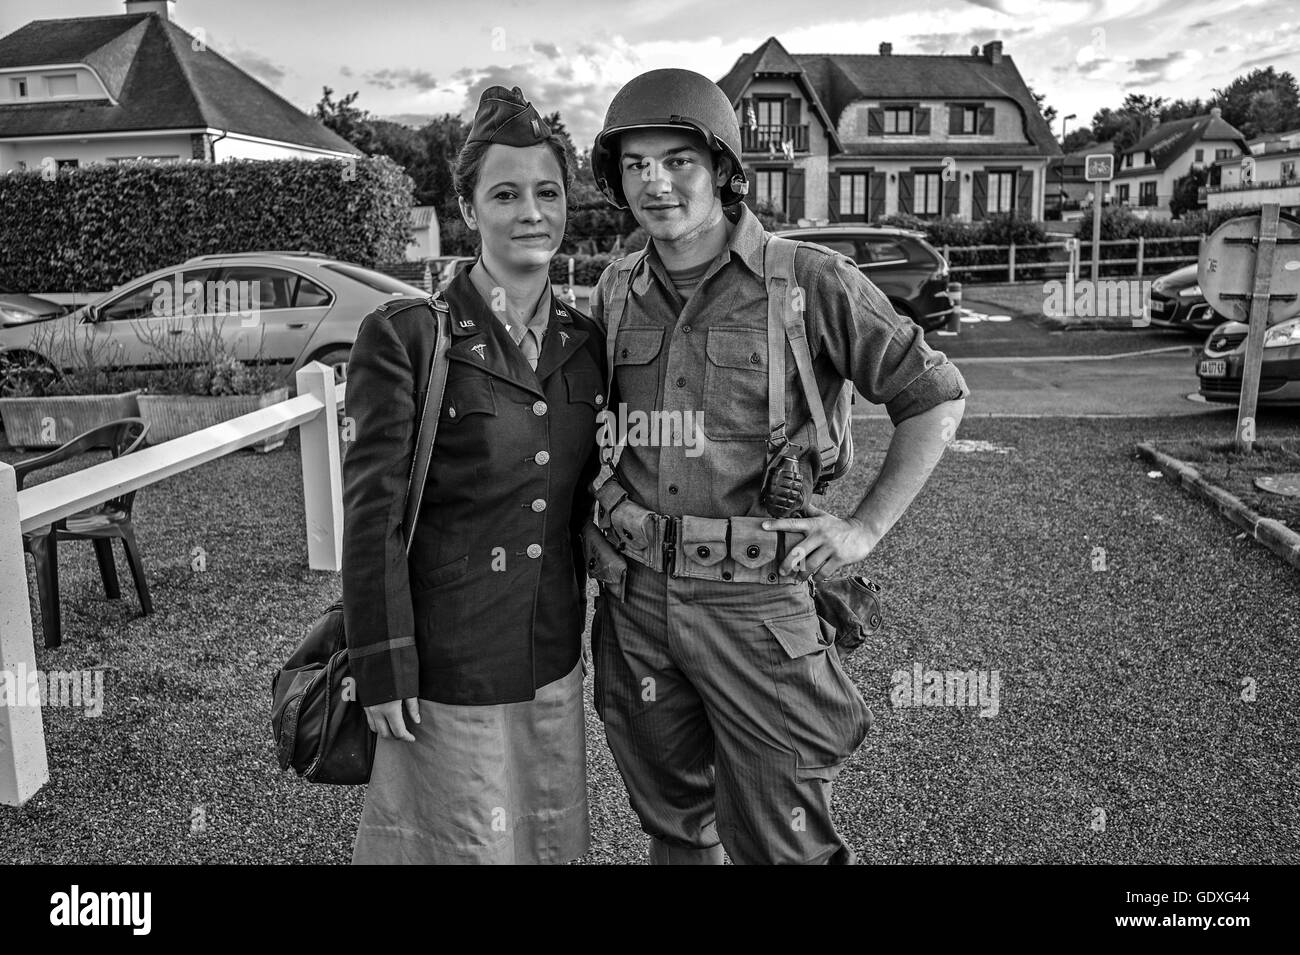 Man and woman pose in soldier and nurse costume in France, 2014 - Stock Image